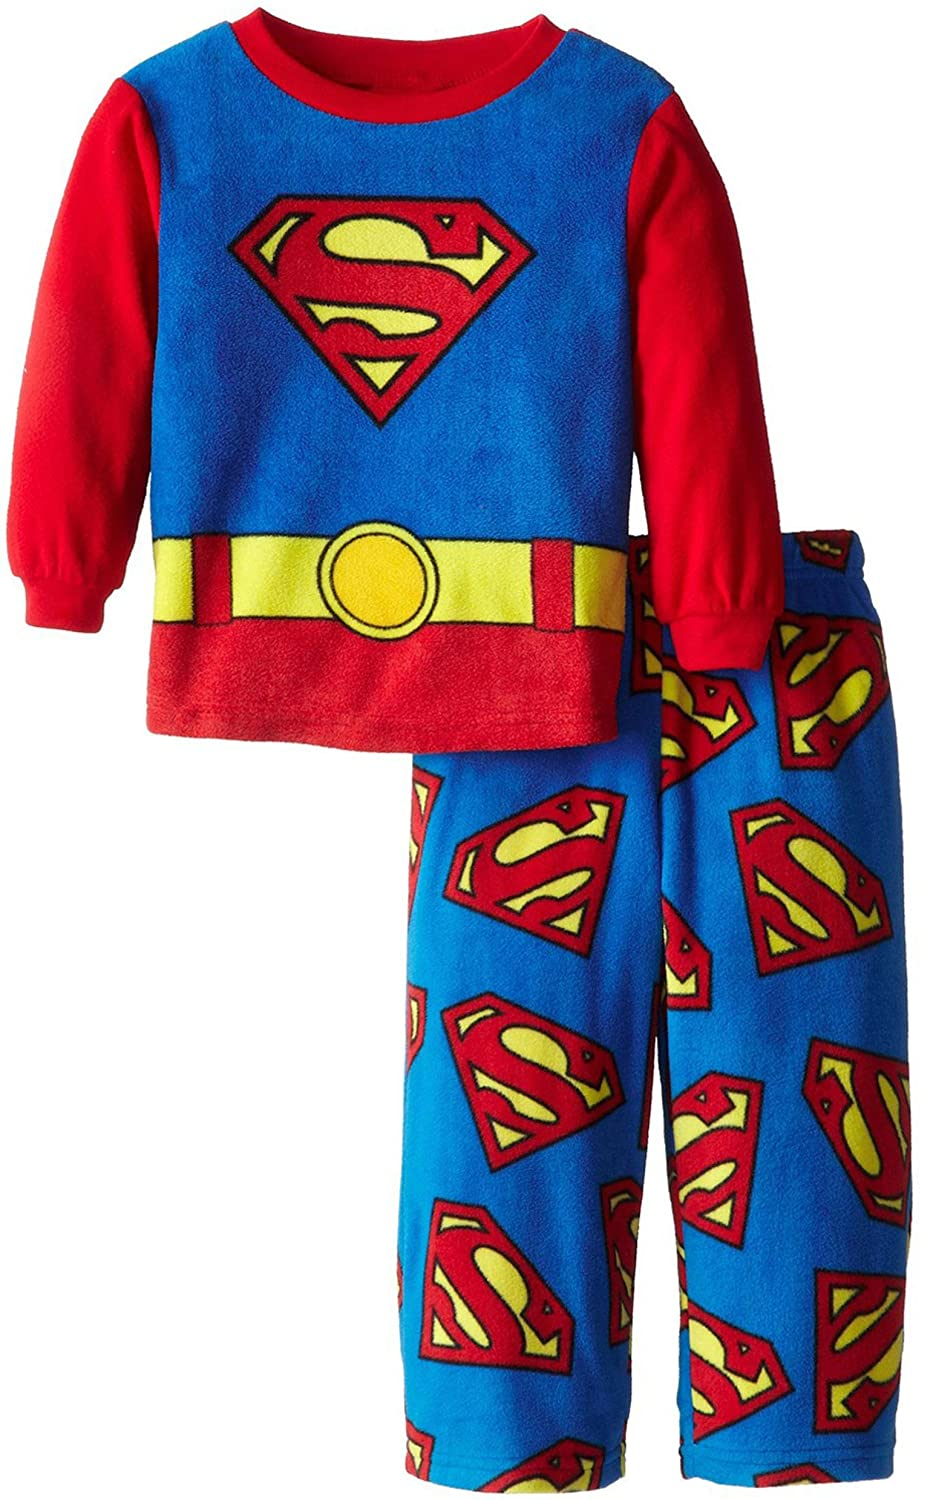 DC Comics Superman Fleece Pajamas for Little Boys SP006BL8